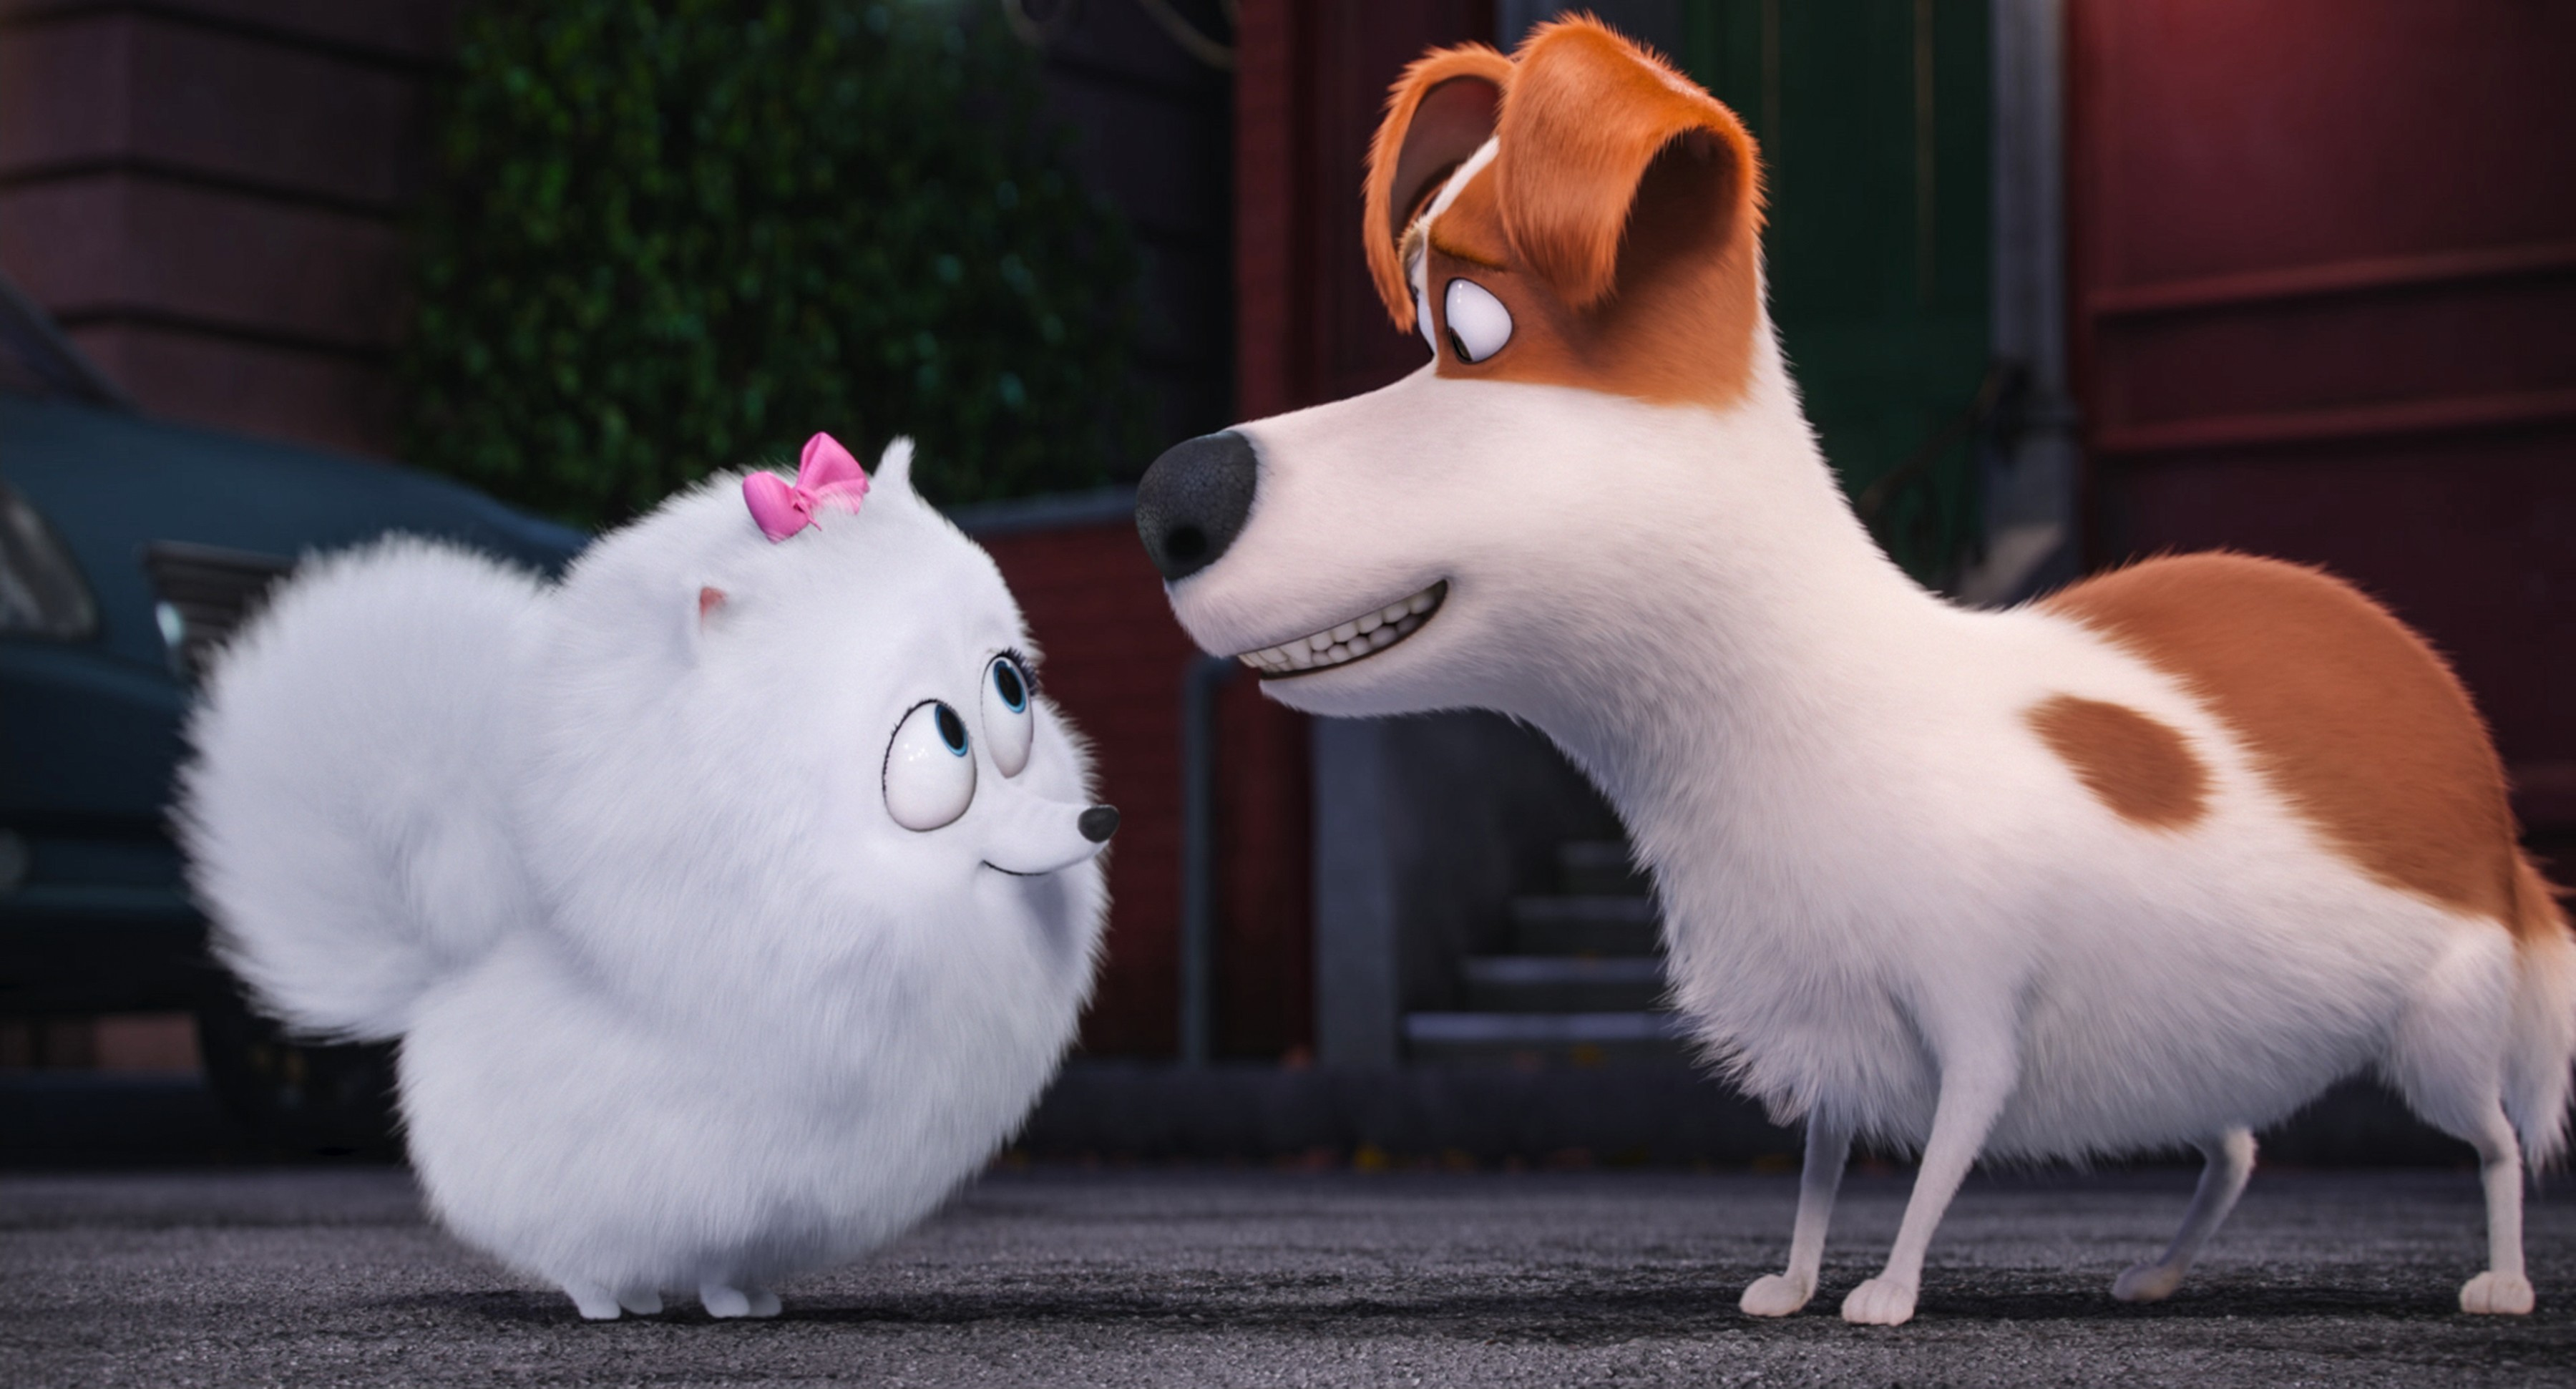 Secret Life Of Pets Wallpaper: Wallpaper The Secret Life Of Pets, Dog, Best Animation